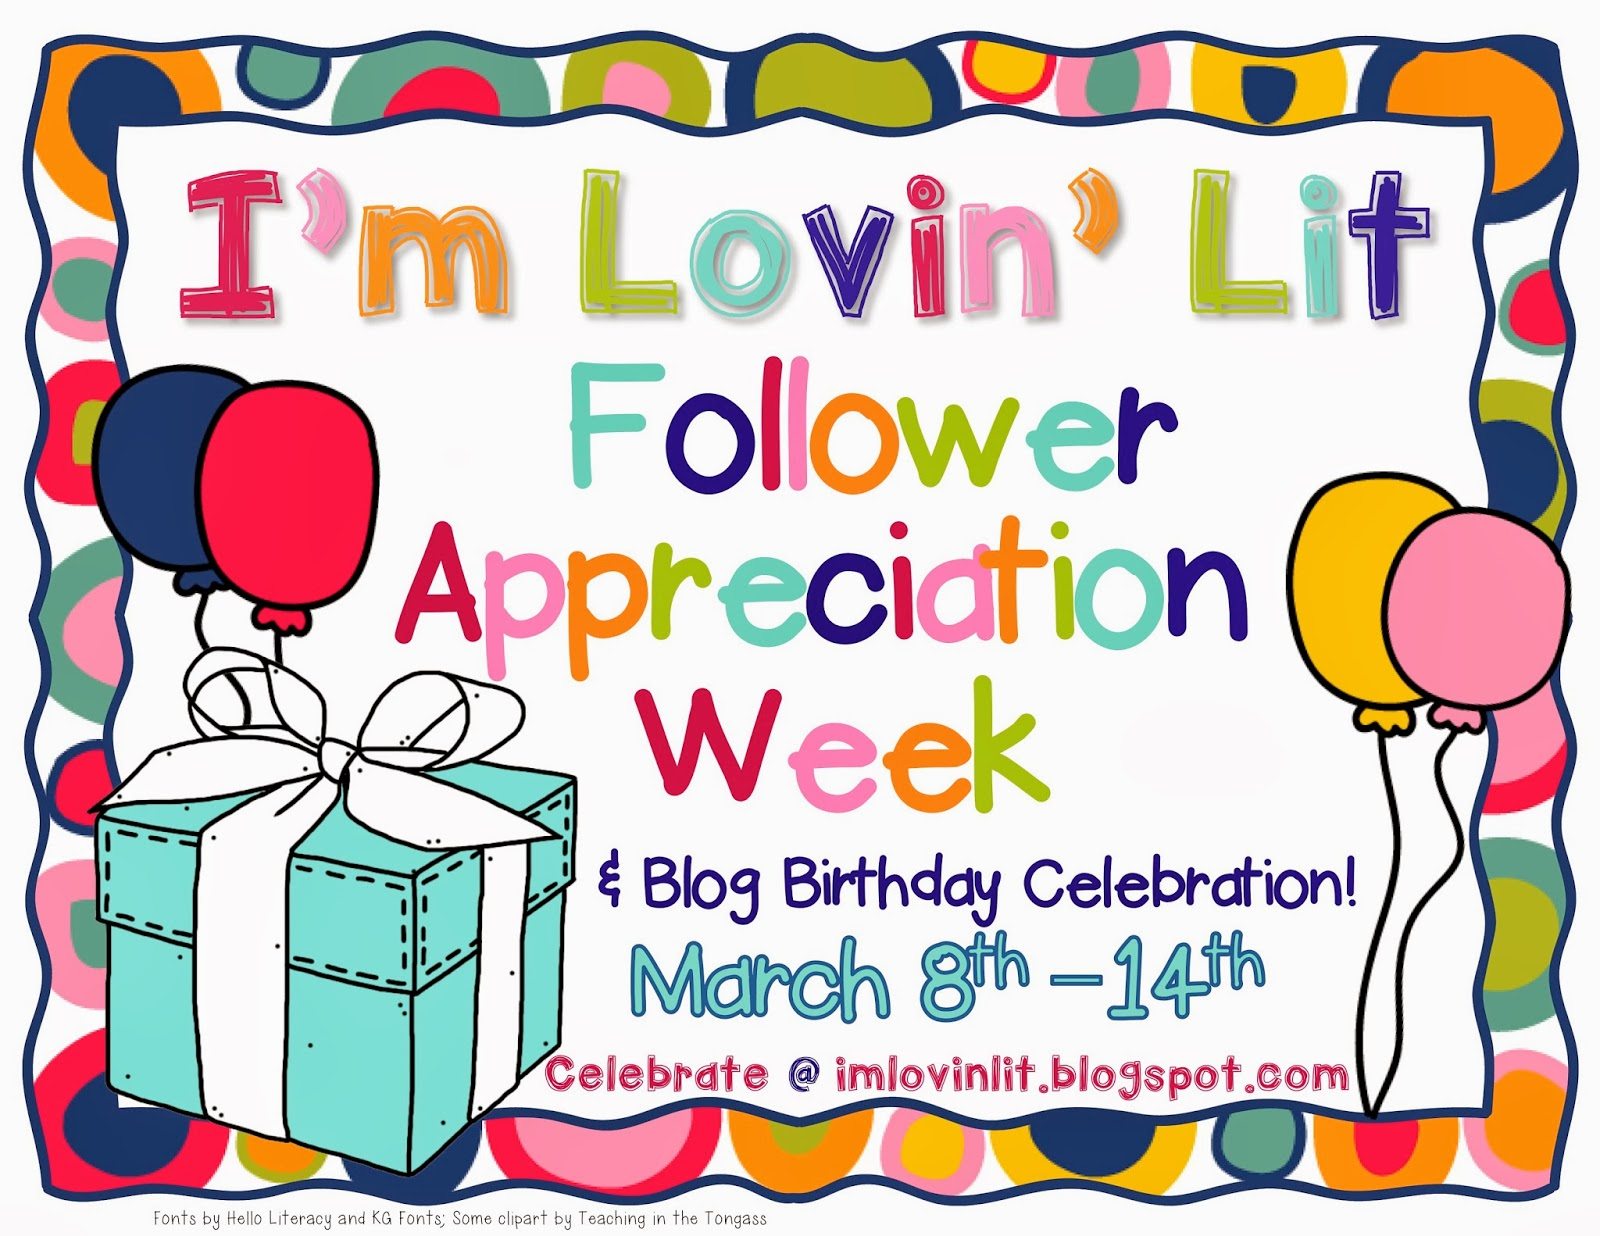 Day 6: Follower Appreciation Week